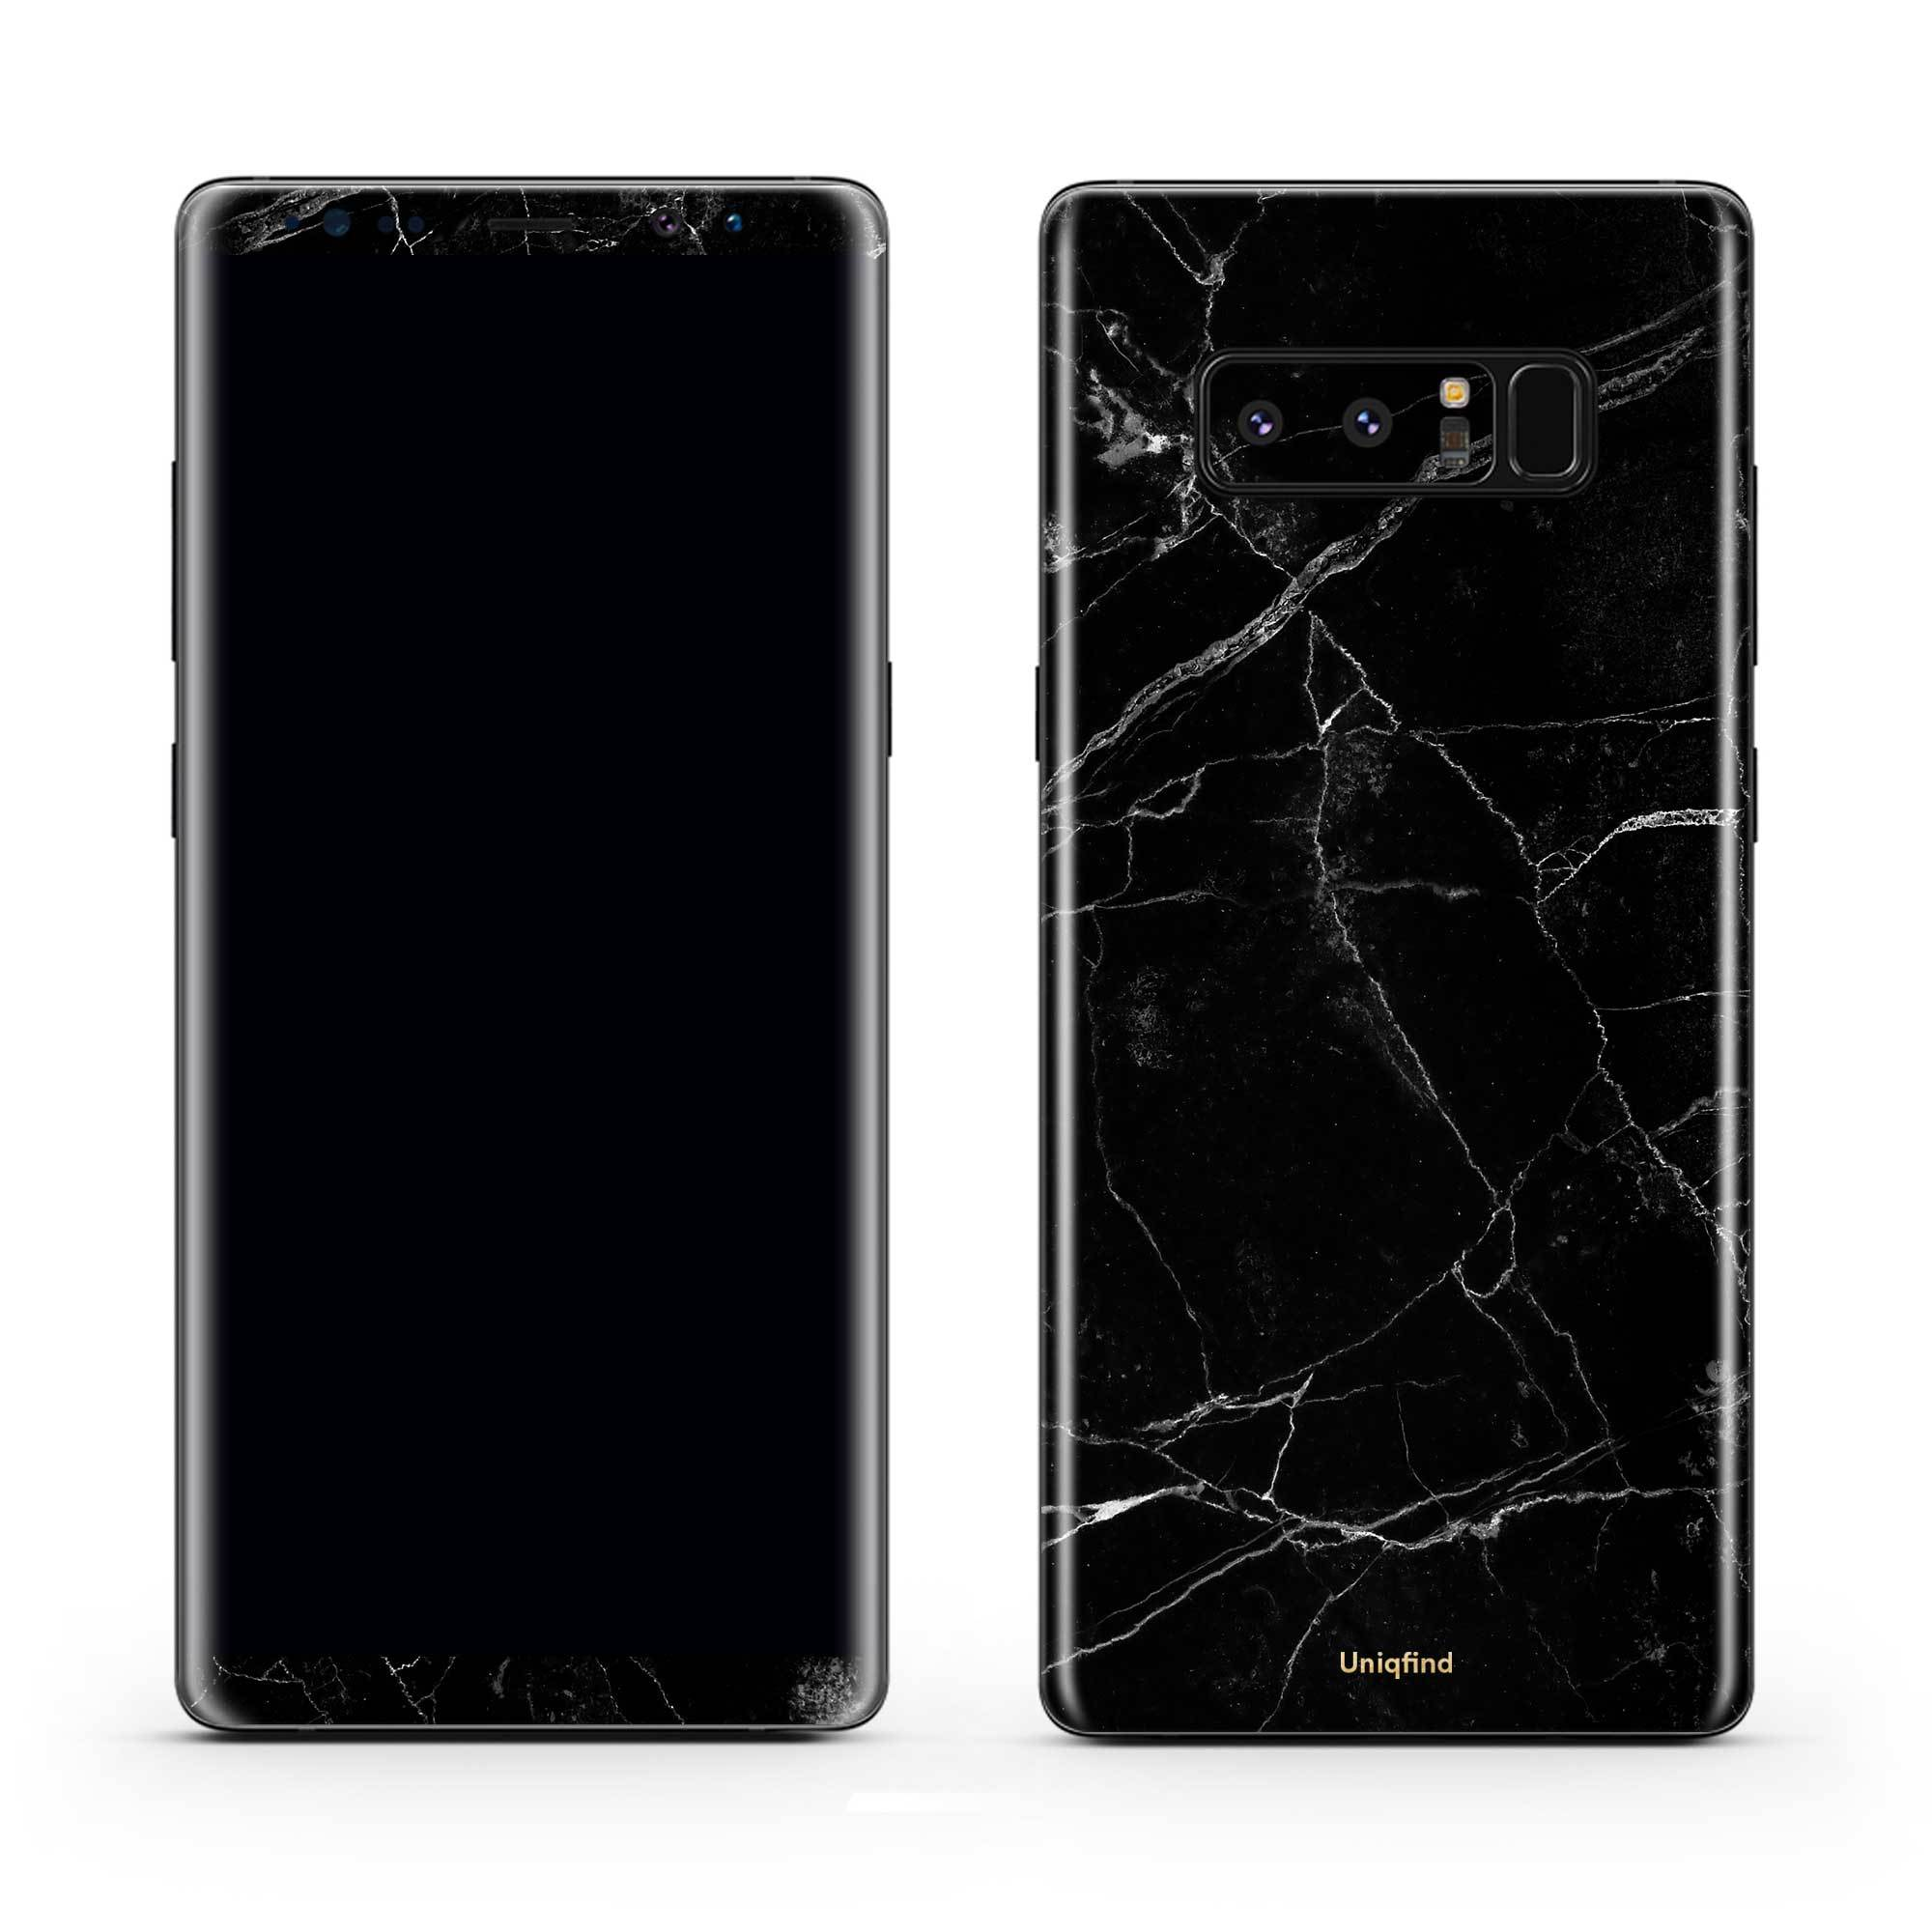 Black Marble Galaxy Note 8 Skin + Case